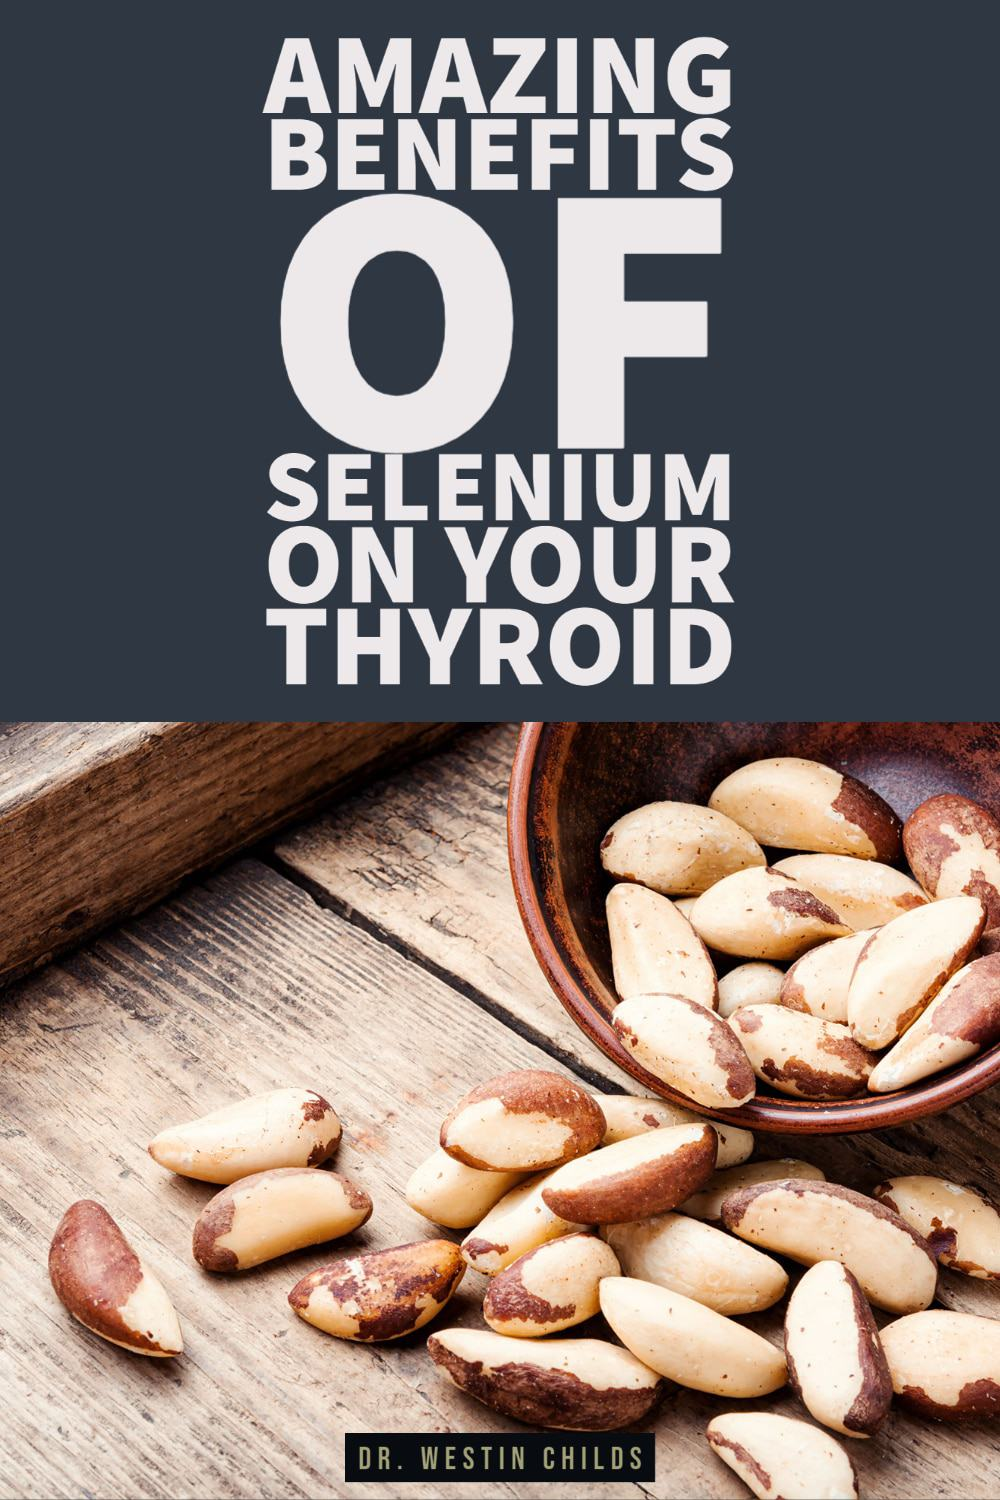 How to use Selenium to Boost Your Thyroid Naturally